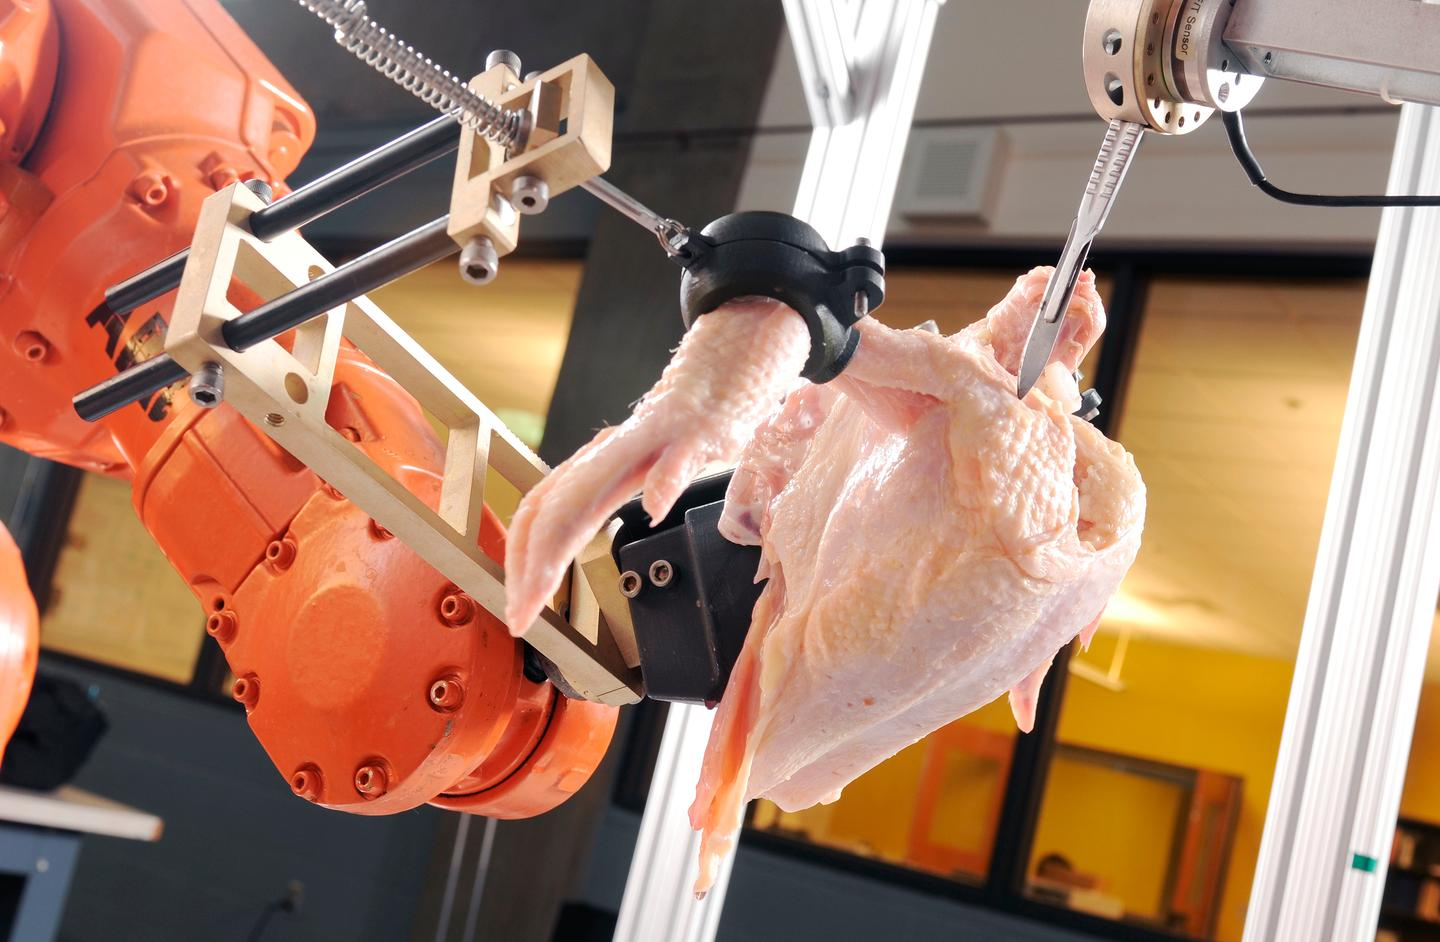 The Intelligent Cutting and Deboning System robot uses 3D imaging technology to automatically debone chickens